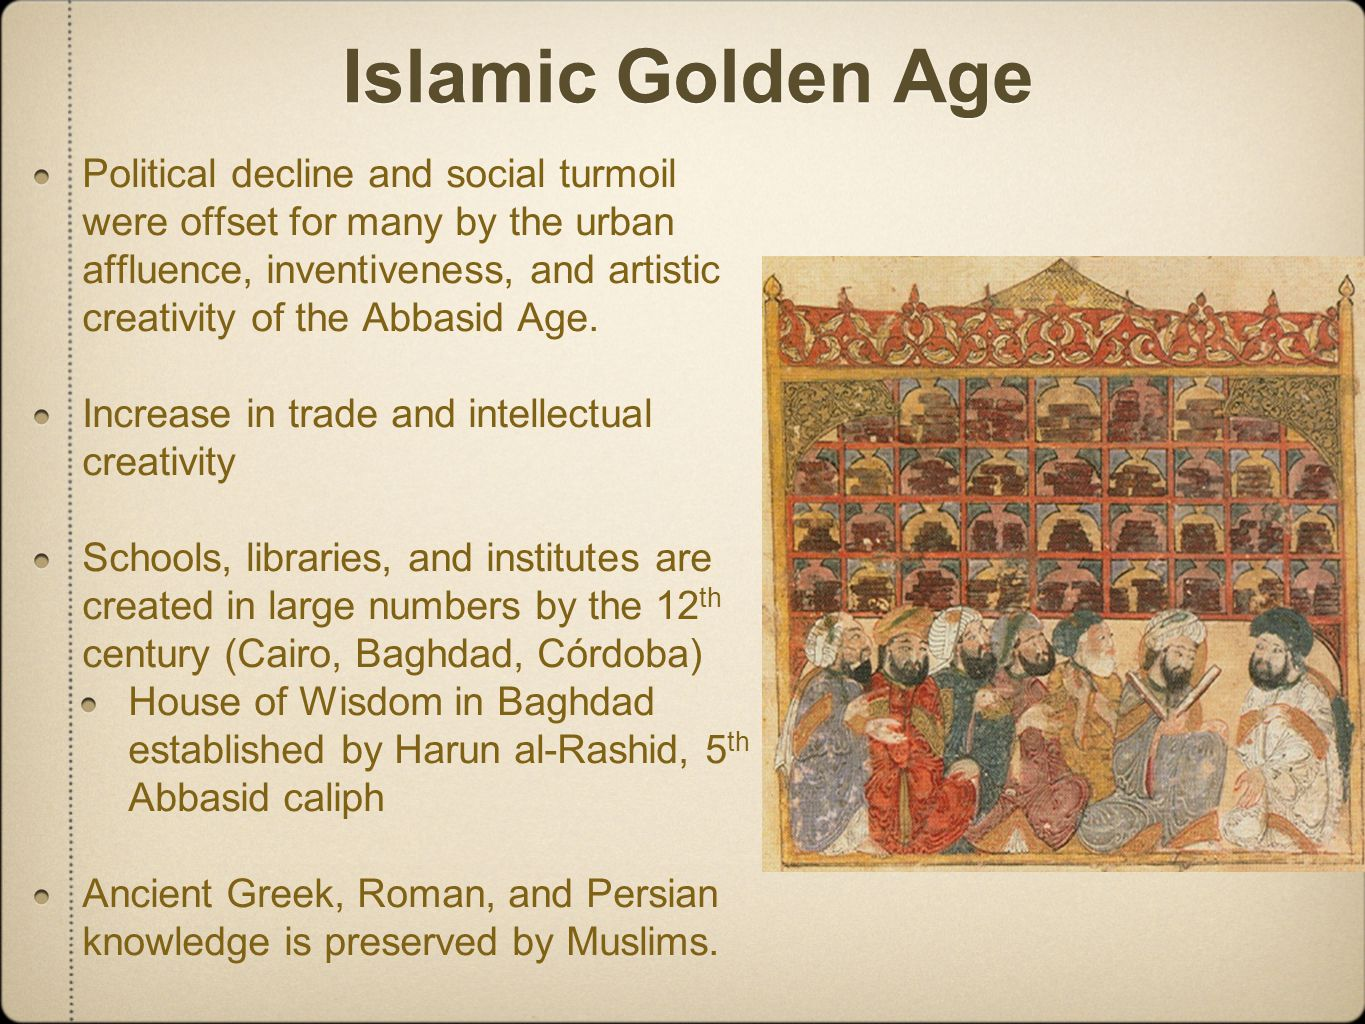 Islamic Golden Age Political decline and social turmoil were offset for many by the urban affluence, inventiveness, and artistic creativity of the Abb